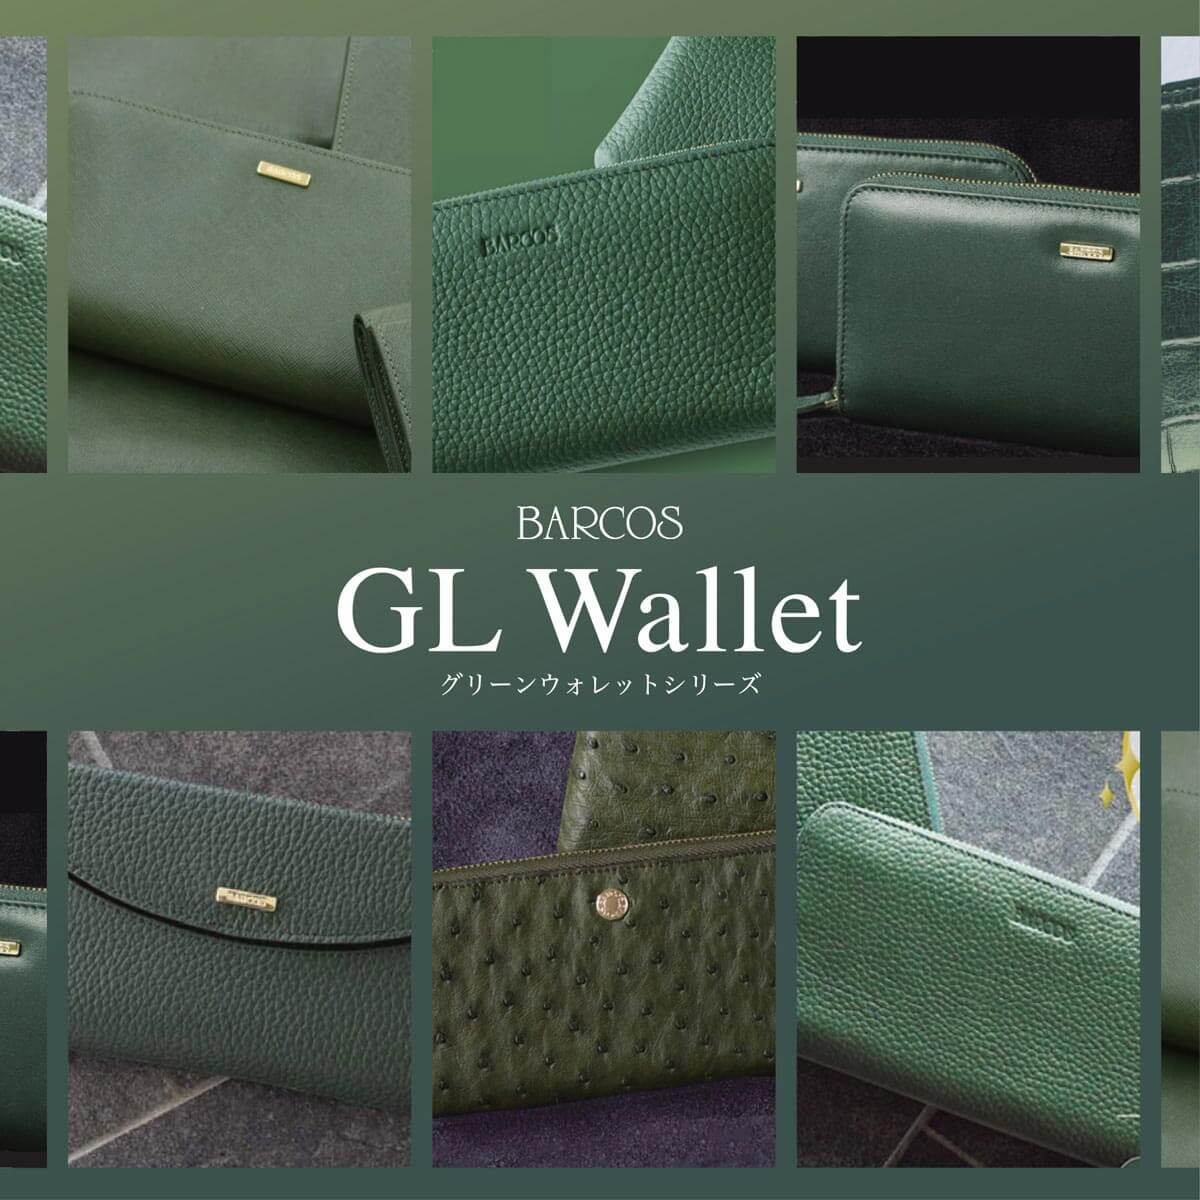 BARCOS GREEN WALLET SERIES